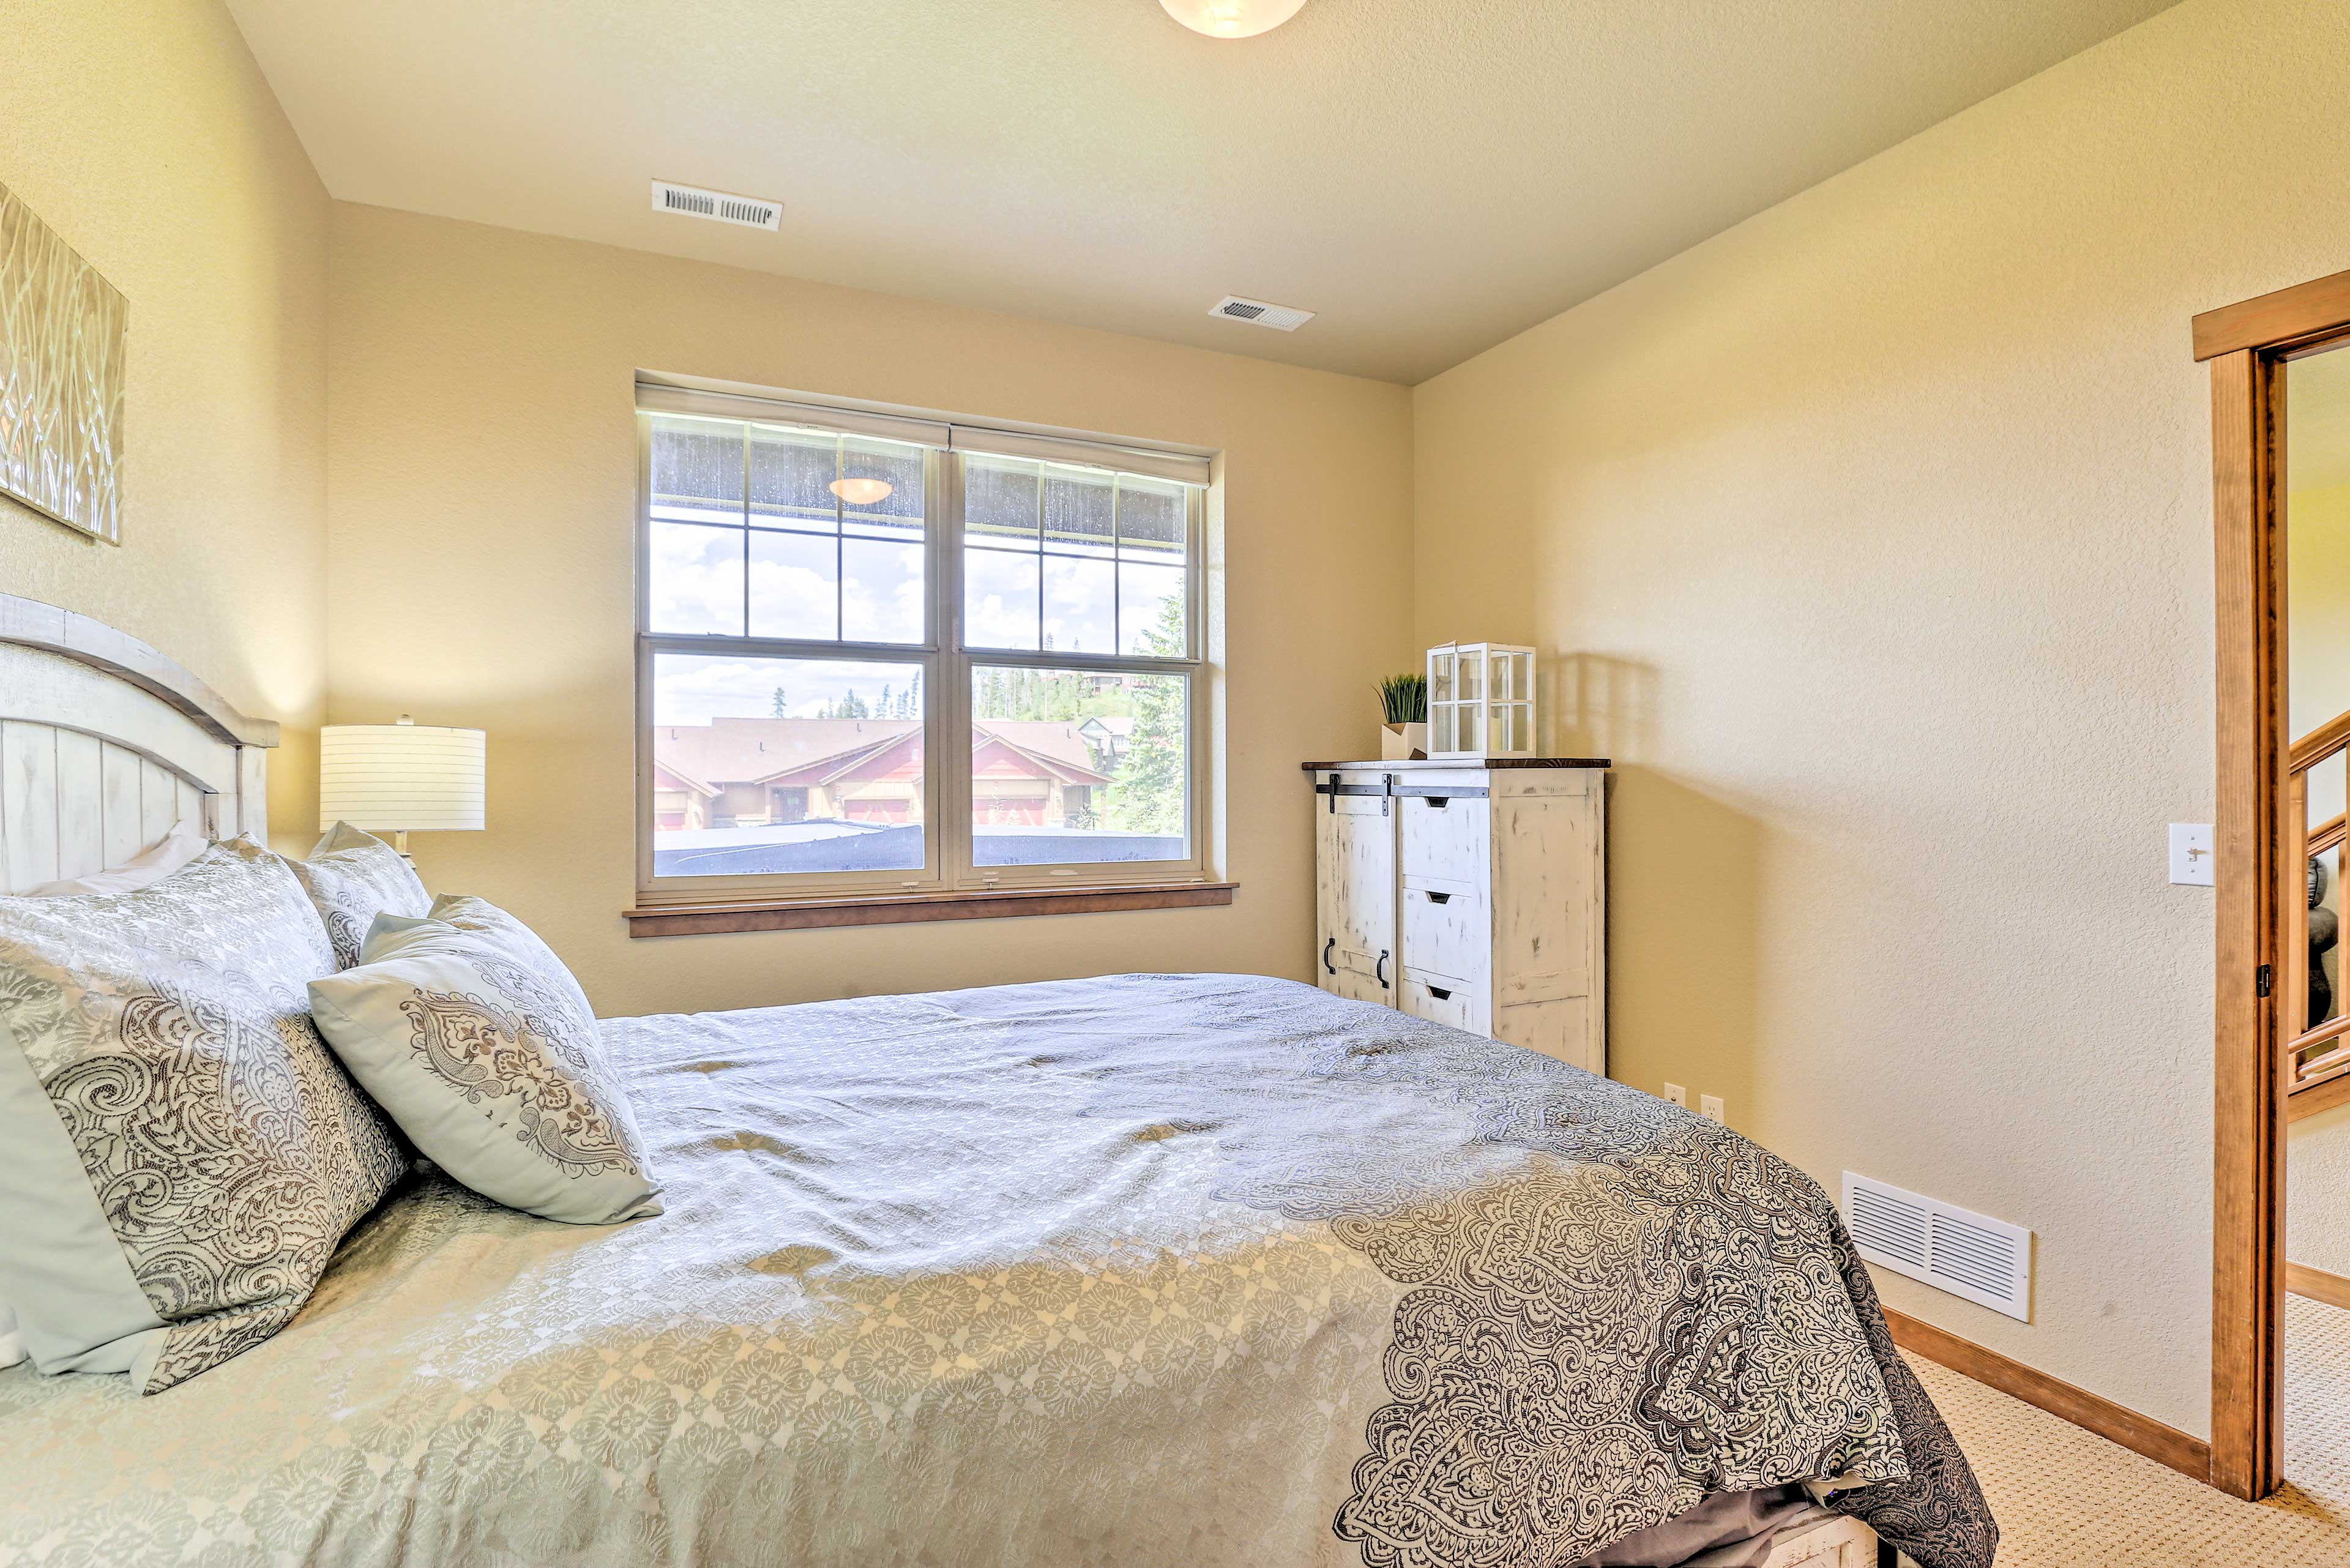 Move yourself into this second bedroom with views out the window.